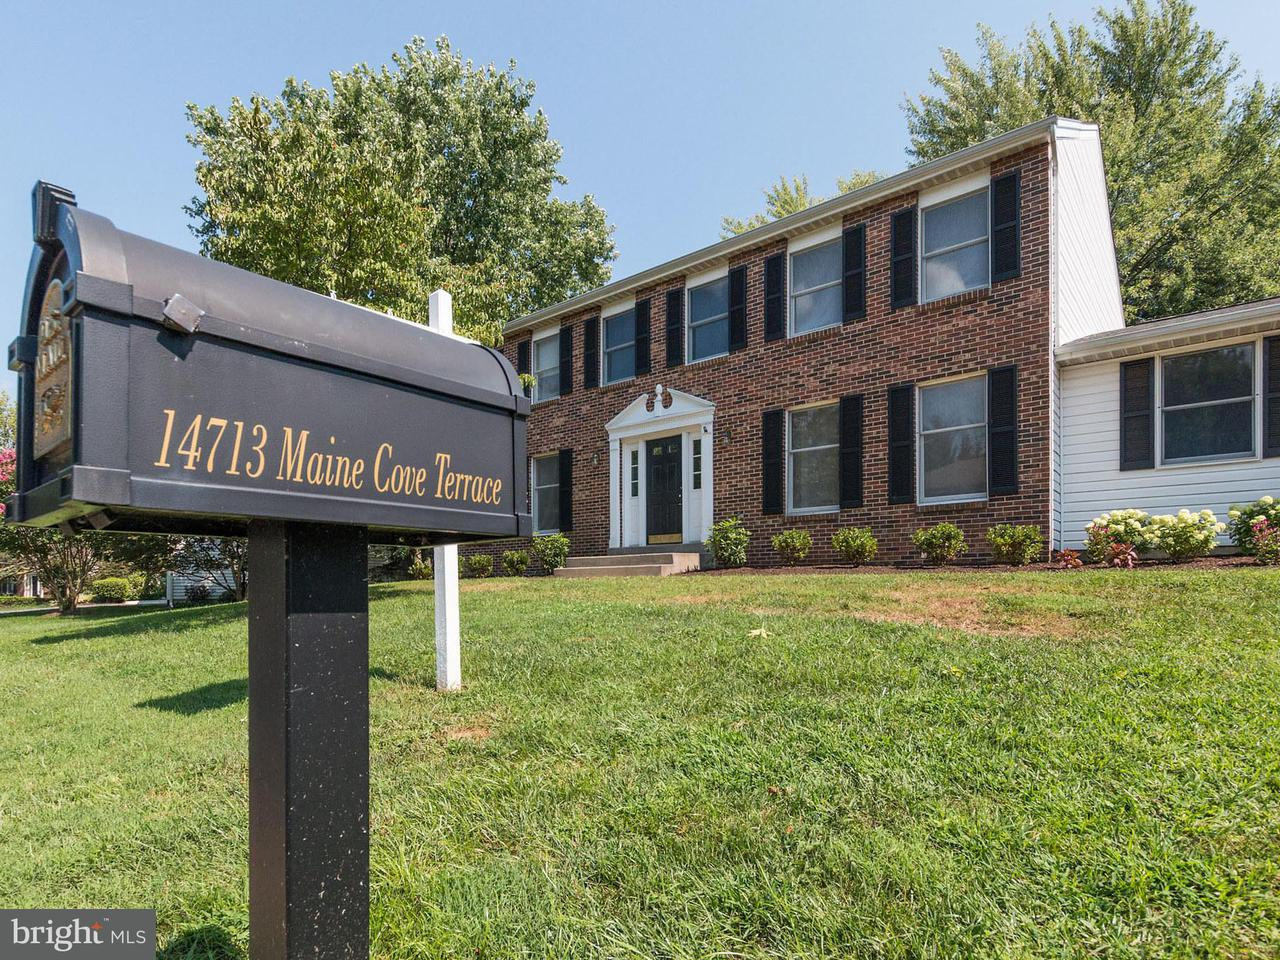 Single Family Home for Sale at 14713 MAINE COVE TER 14713 MAINE COVE TER North Potomac, Maryland 20878 United States